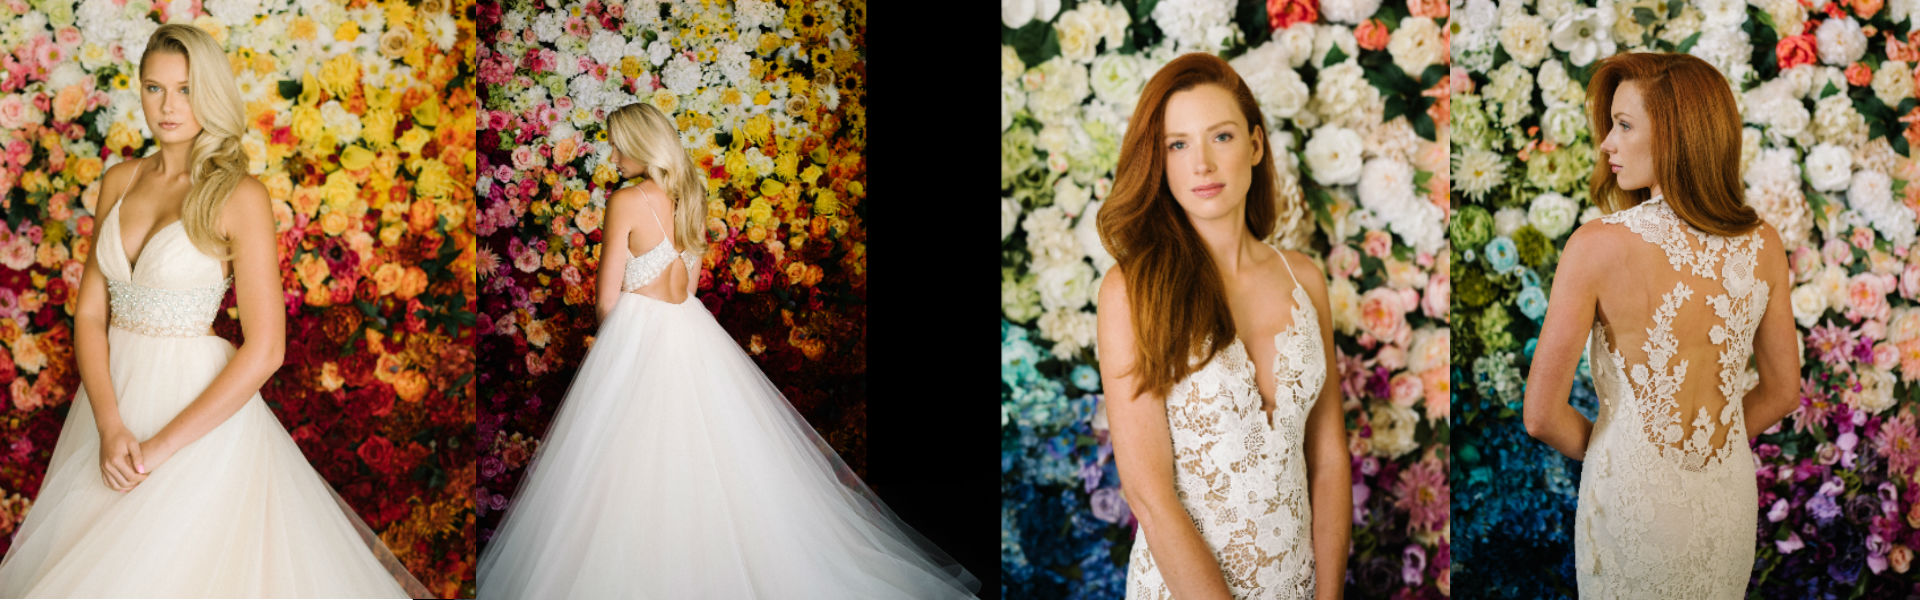 Wedding Dress Boutique in Des Moines and Scottsdale